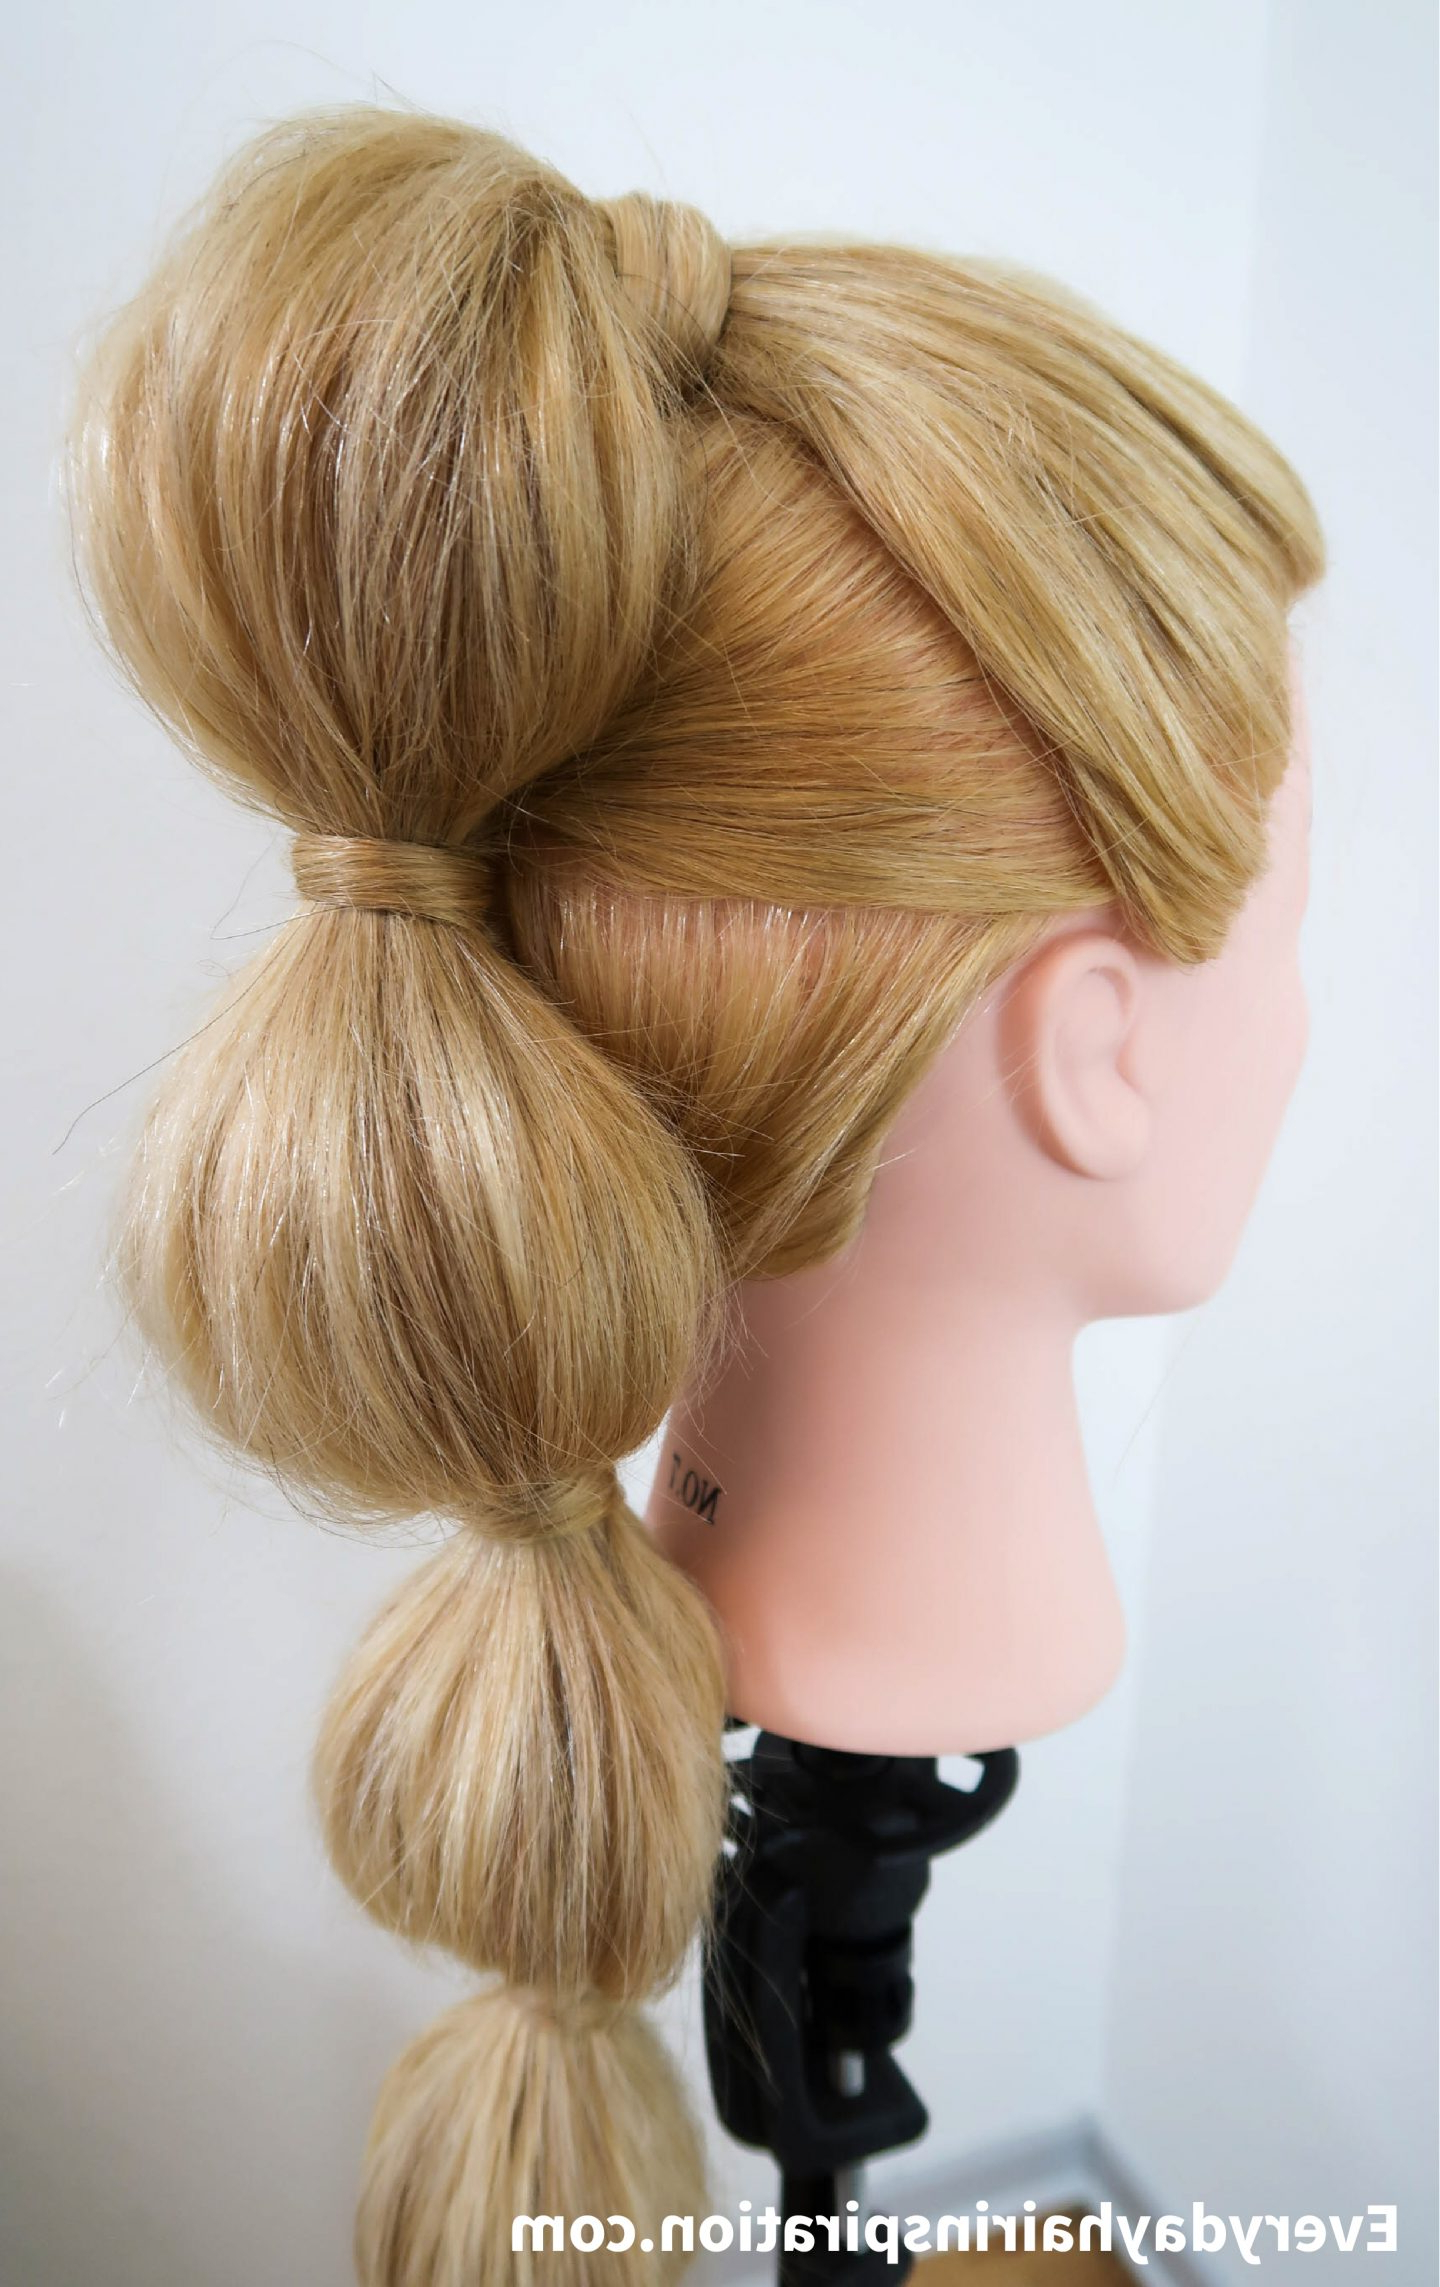 Bubble Ponytail Stepstep – Everyday Hair Inspiration Intended For Most Recent Braided Bubble Ponytail Hairstyles (View 5 of 20)